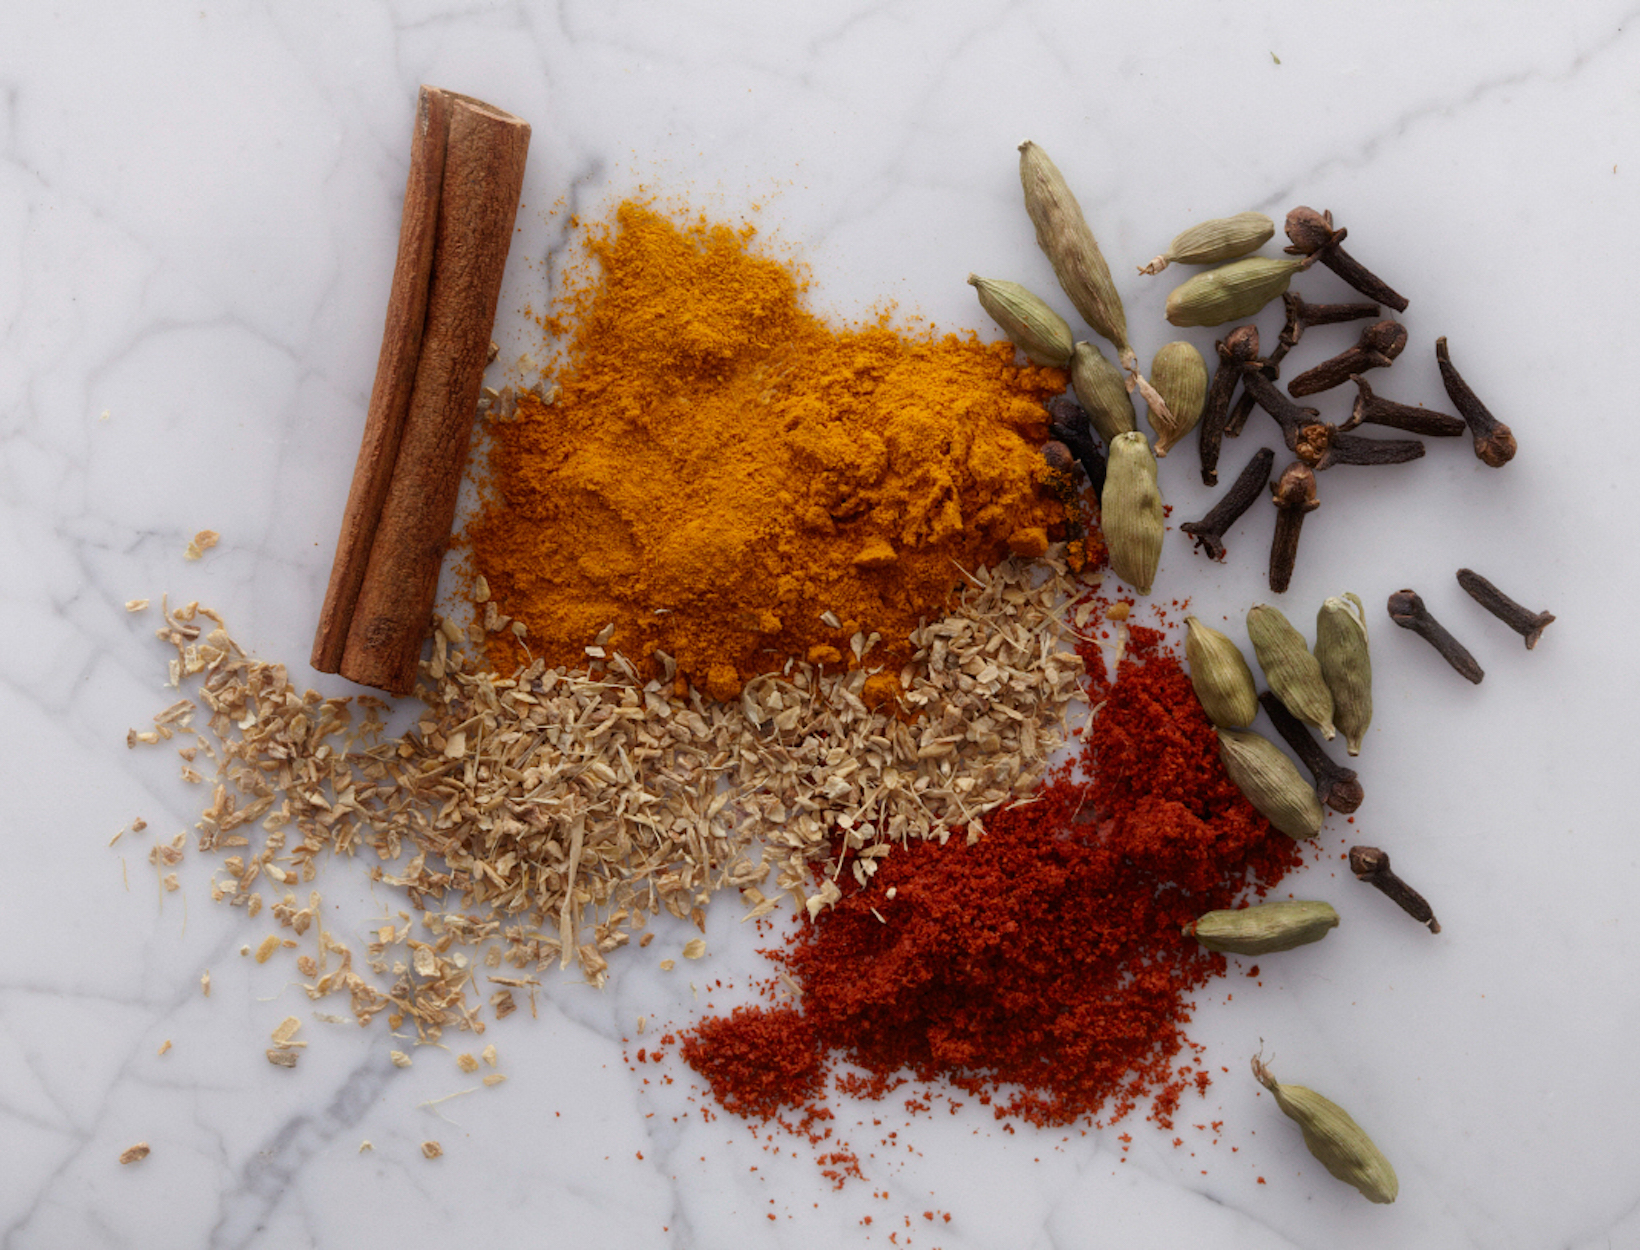 Panchakarma for Lyme: An Ayurvedic Approach to Chronic Disease